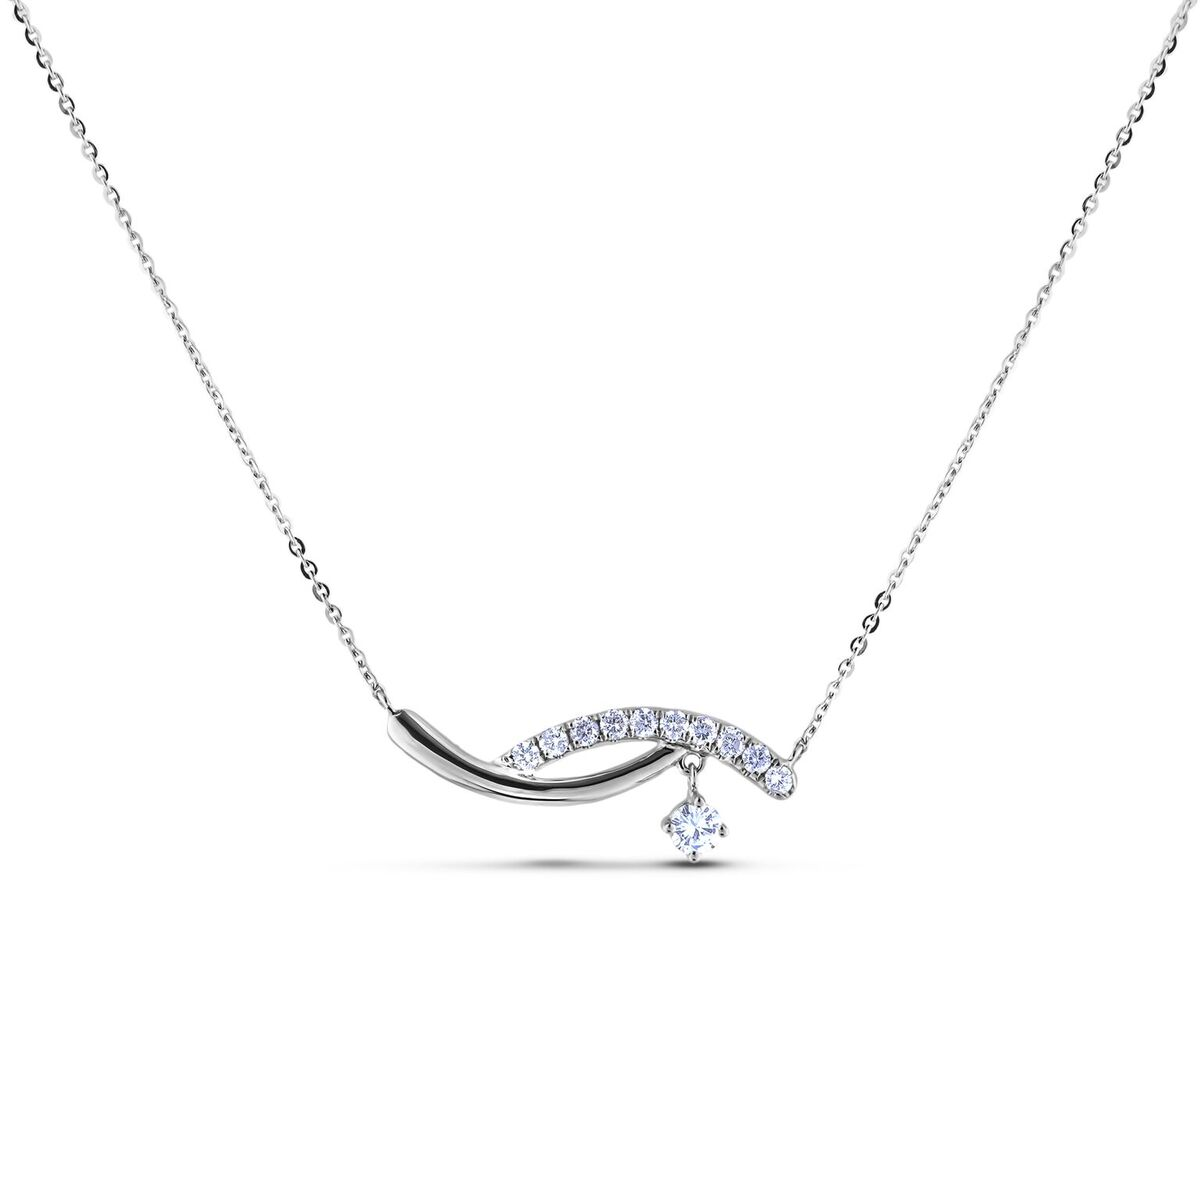 Diamond Necklaces SJL-SEC-MX-ND2778 (Pendants)